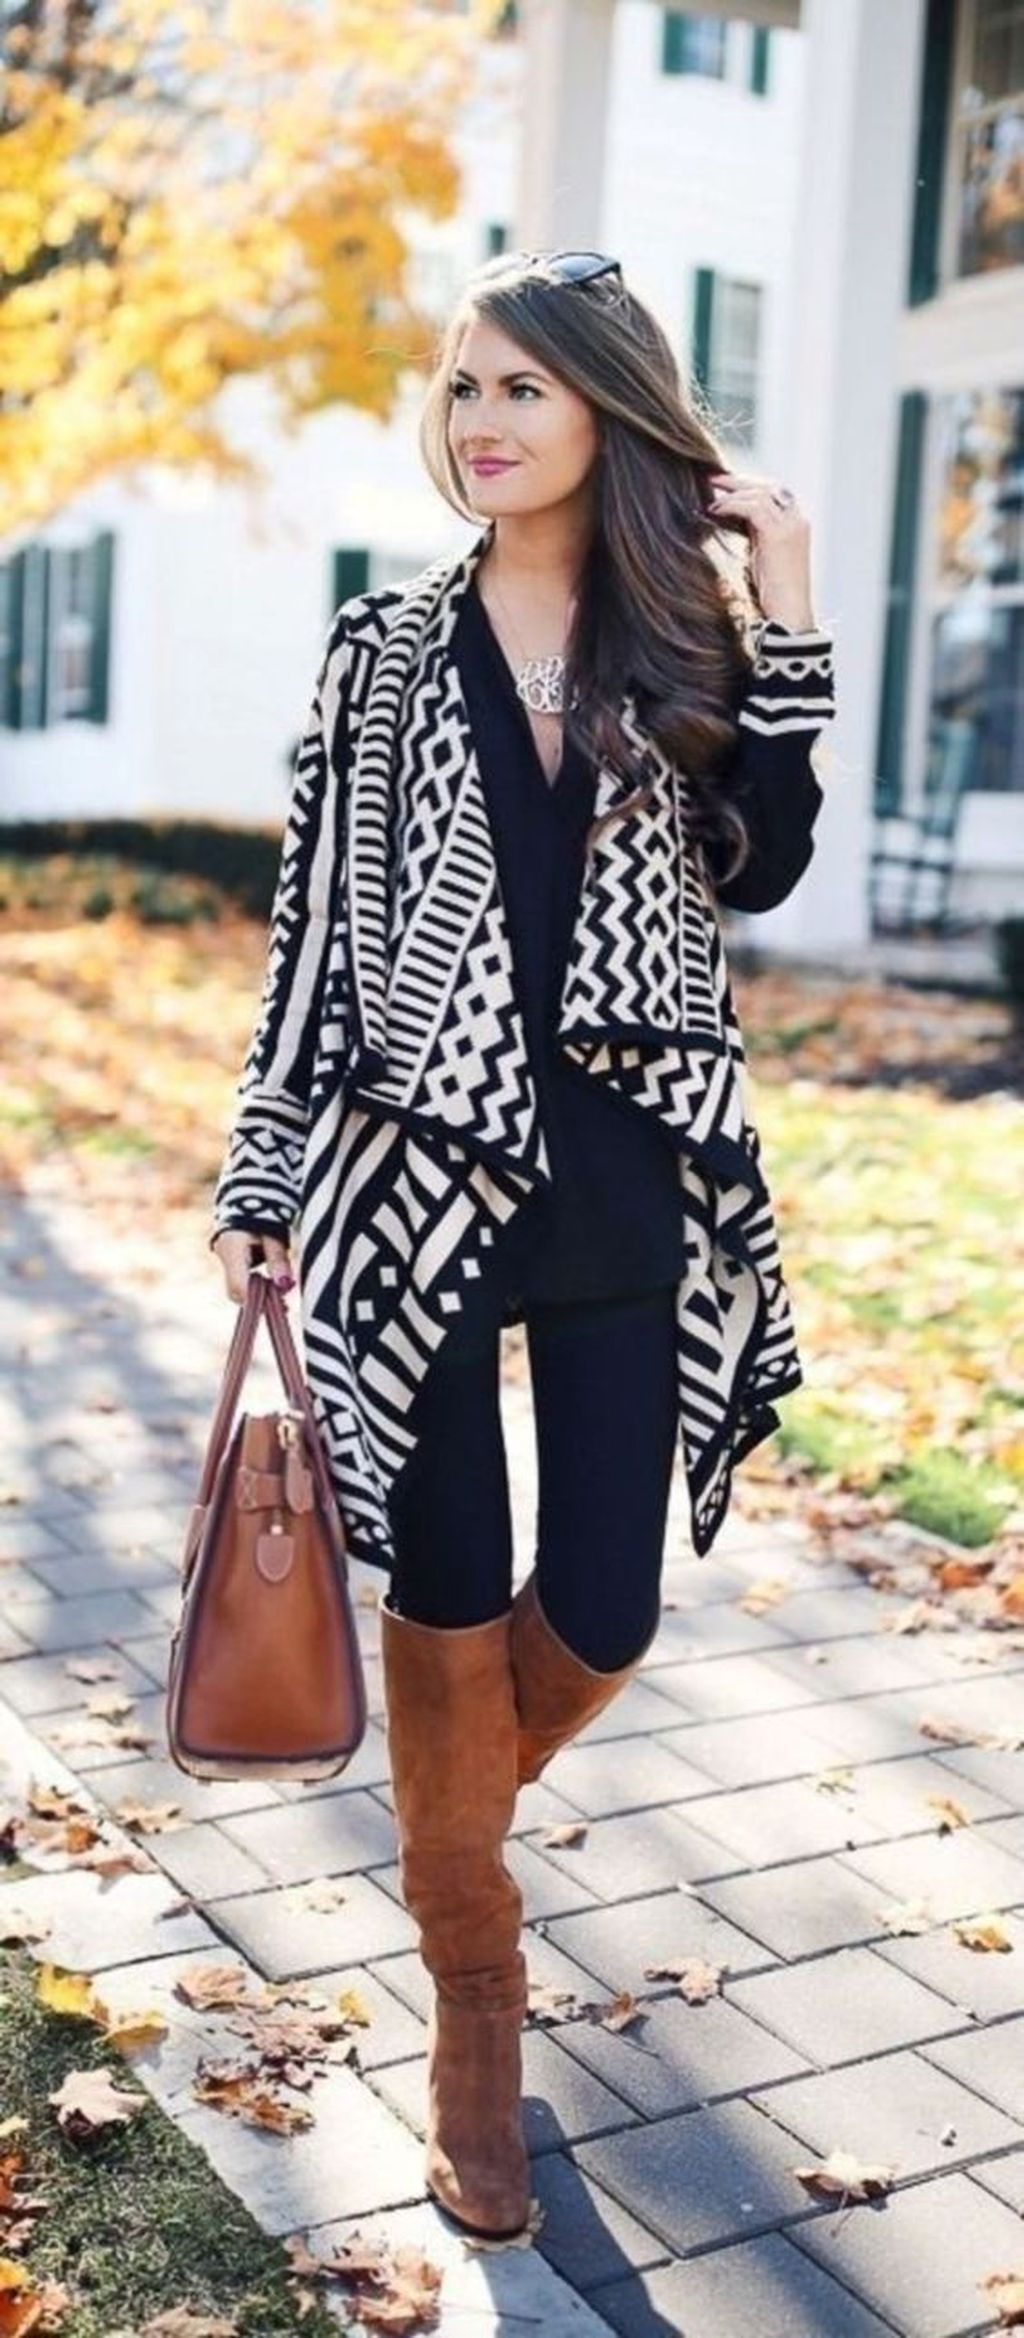 38 Stunning Work Outfits Ideas To Wear This Fall